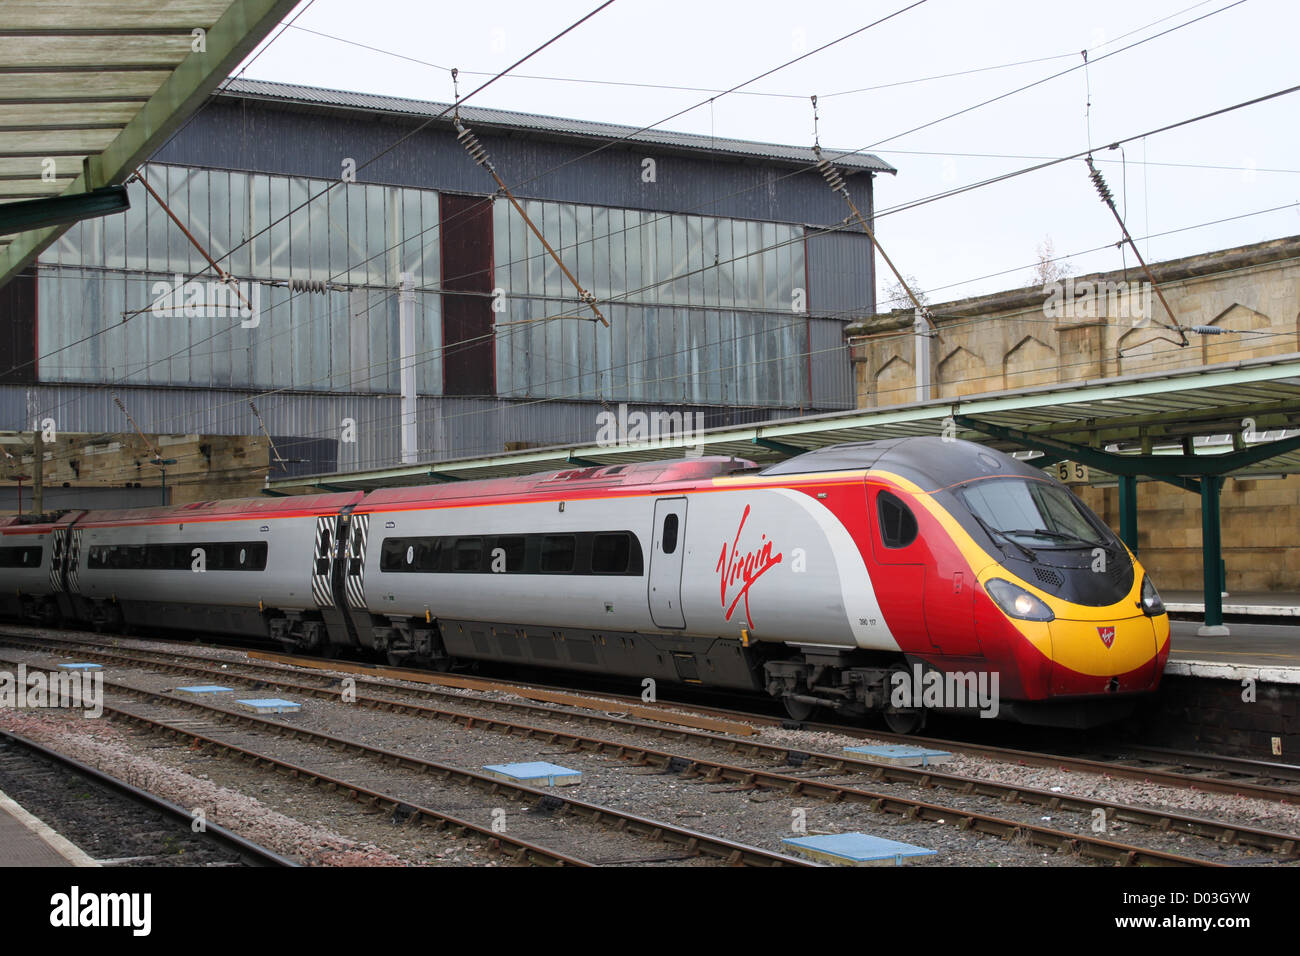 Class 390 Virgin Pendolino electric multiple unit train at Carlisle station on a service to Glasgow Central. Stock Photo